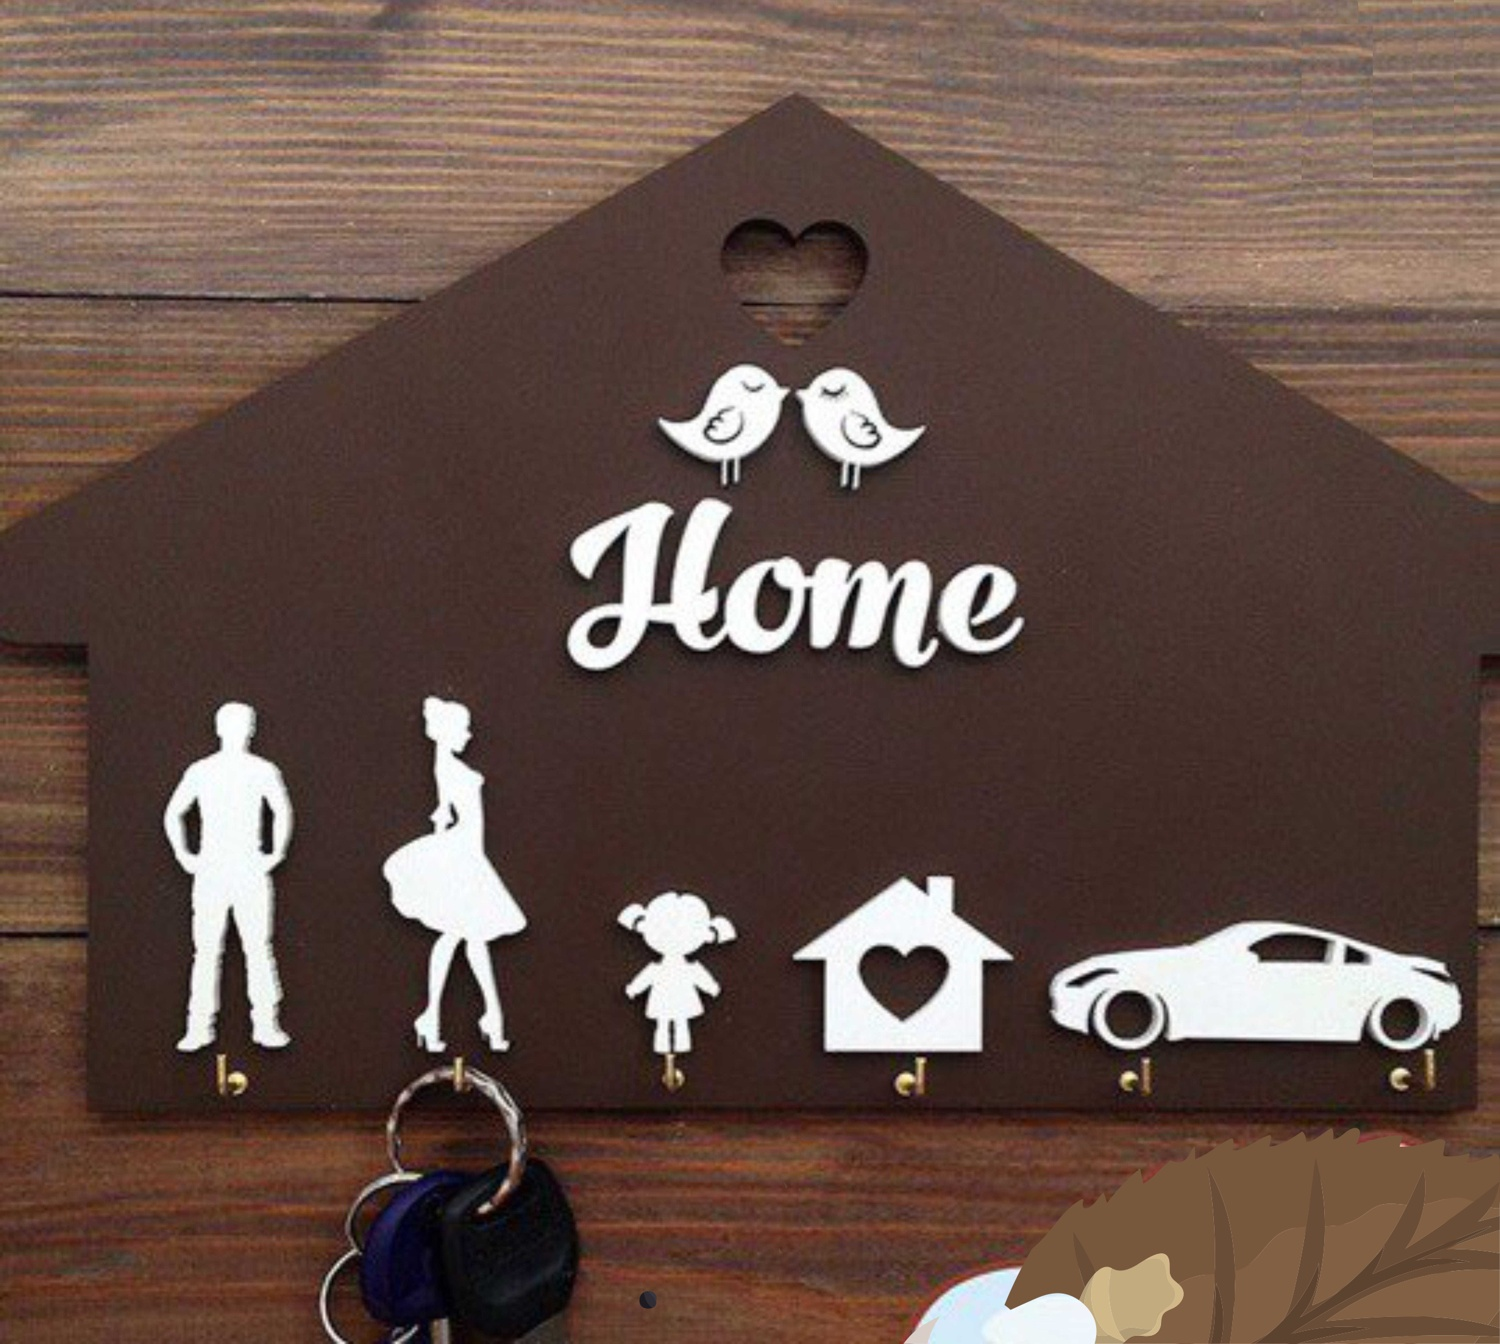 Laser Cut Home Shaped Wooden Key Holder Personalized Key Hanger Free CDR Vectors Art